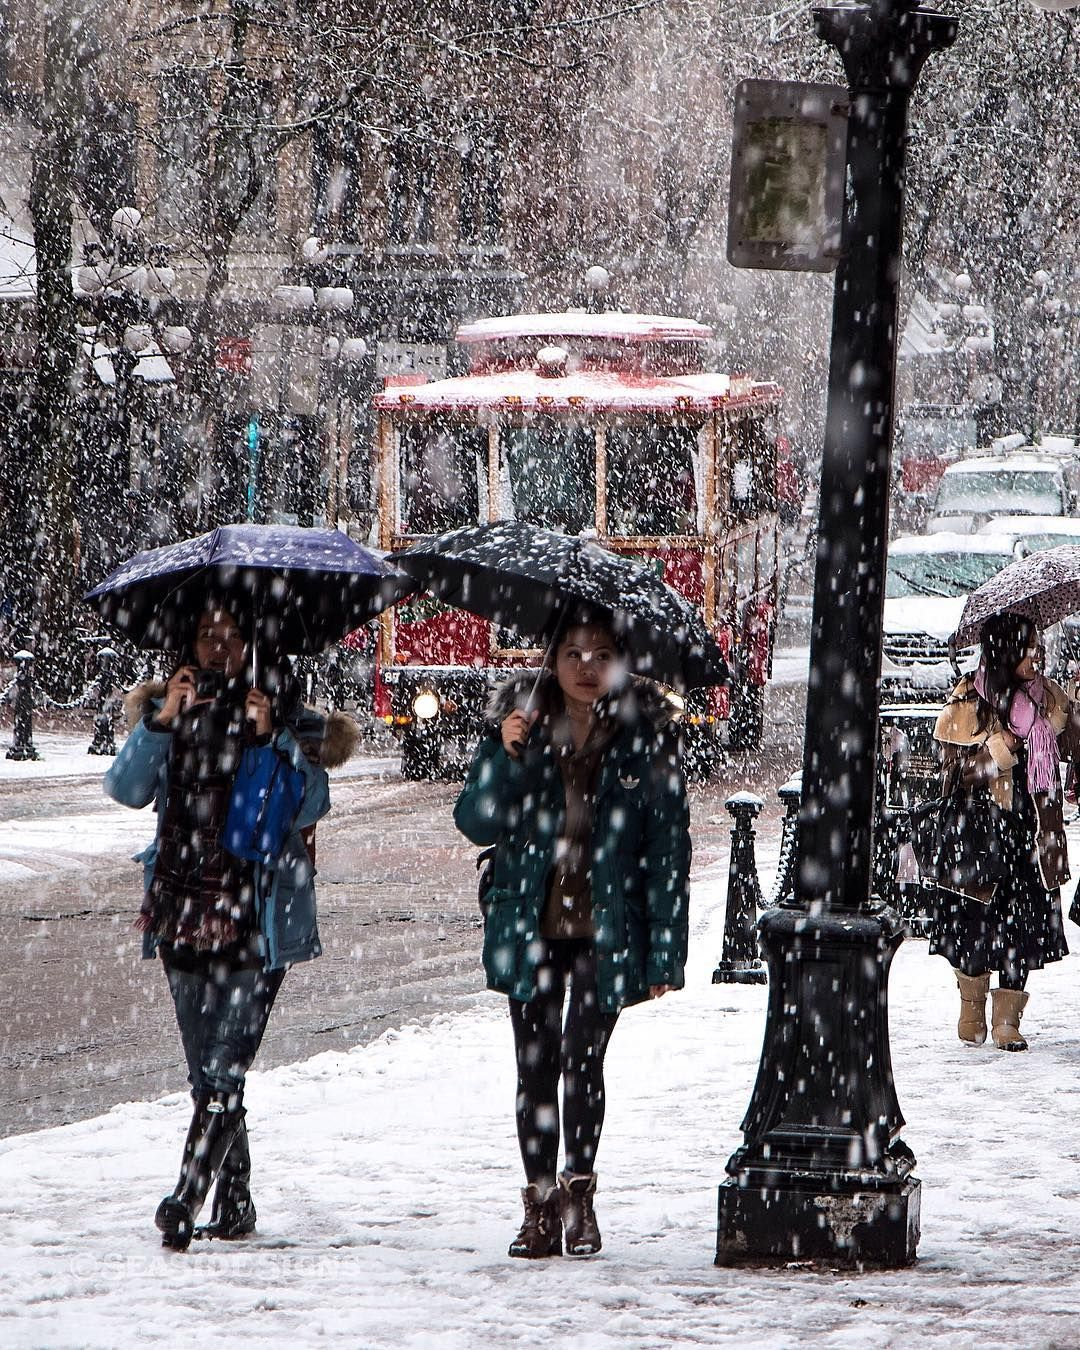 Gastown Vancouver: A White Gastown It's Snowing In Vancouver! A San Francisco